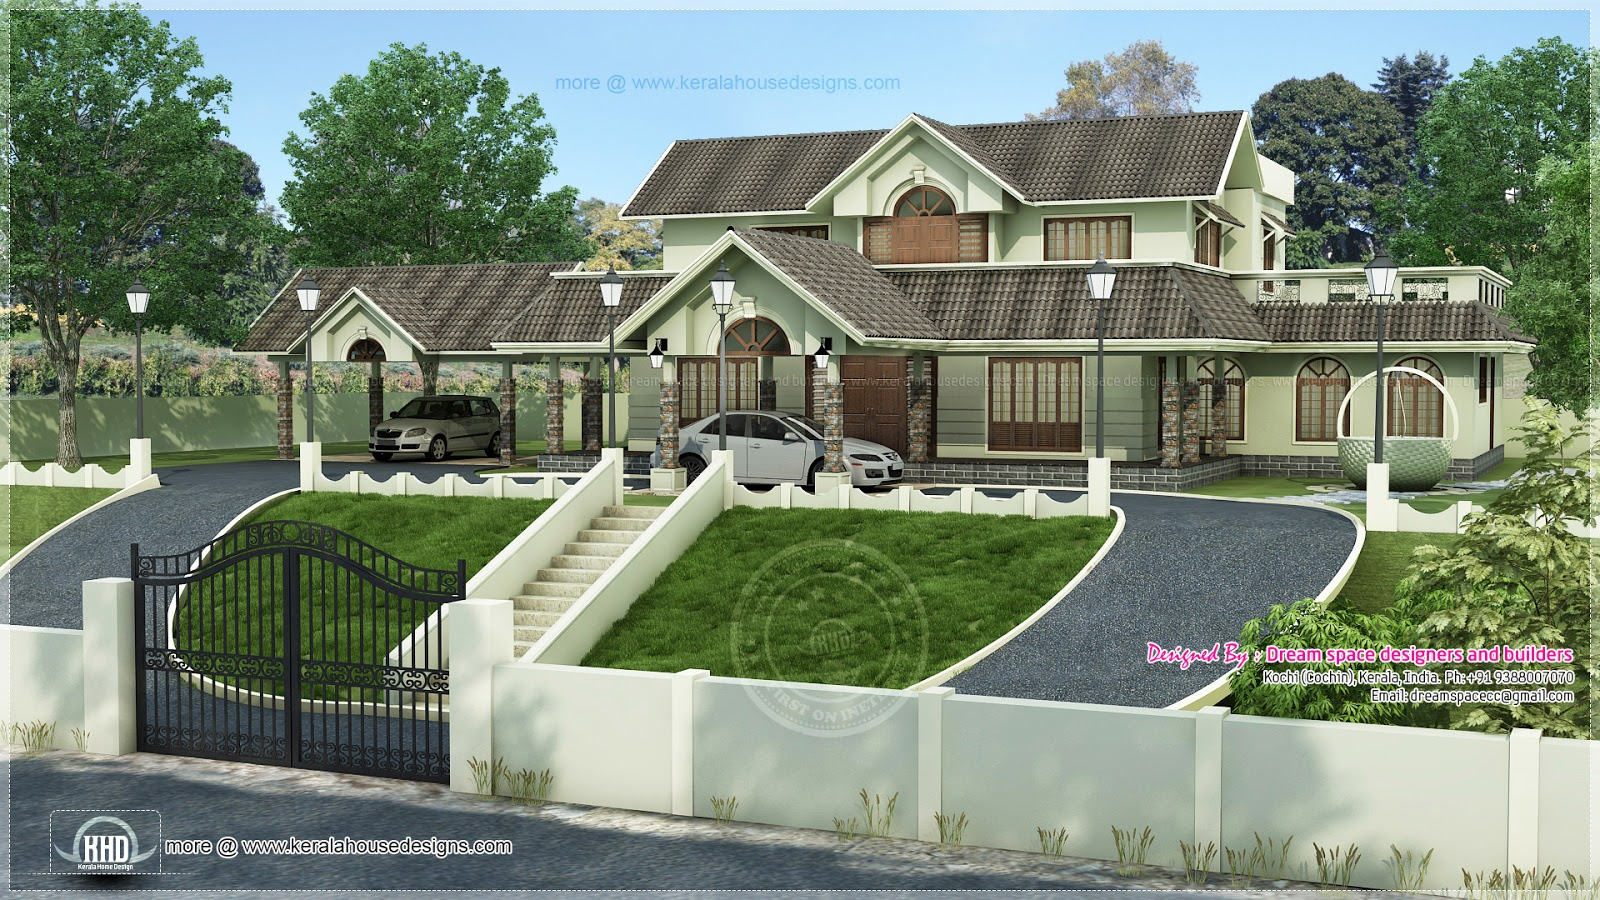 Hillside home design for Hillside home designs